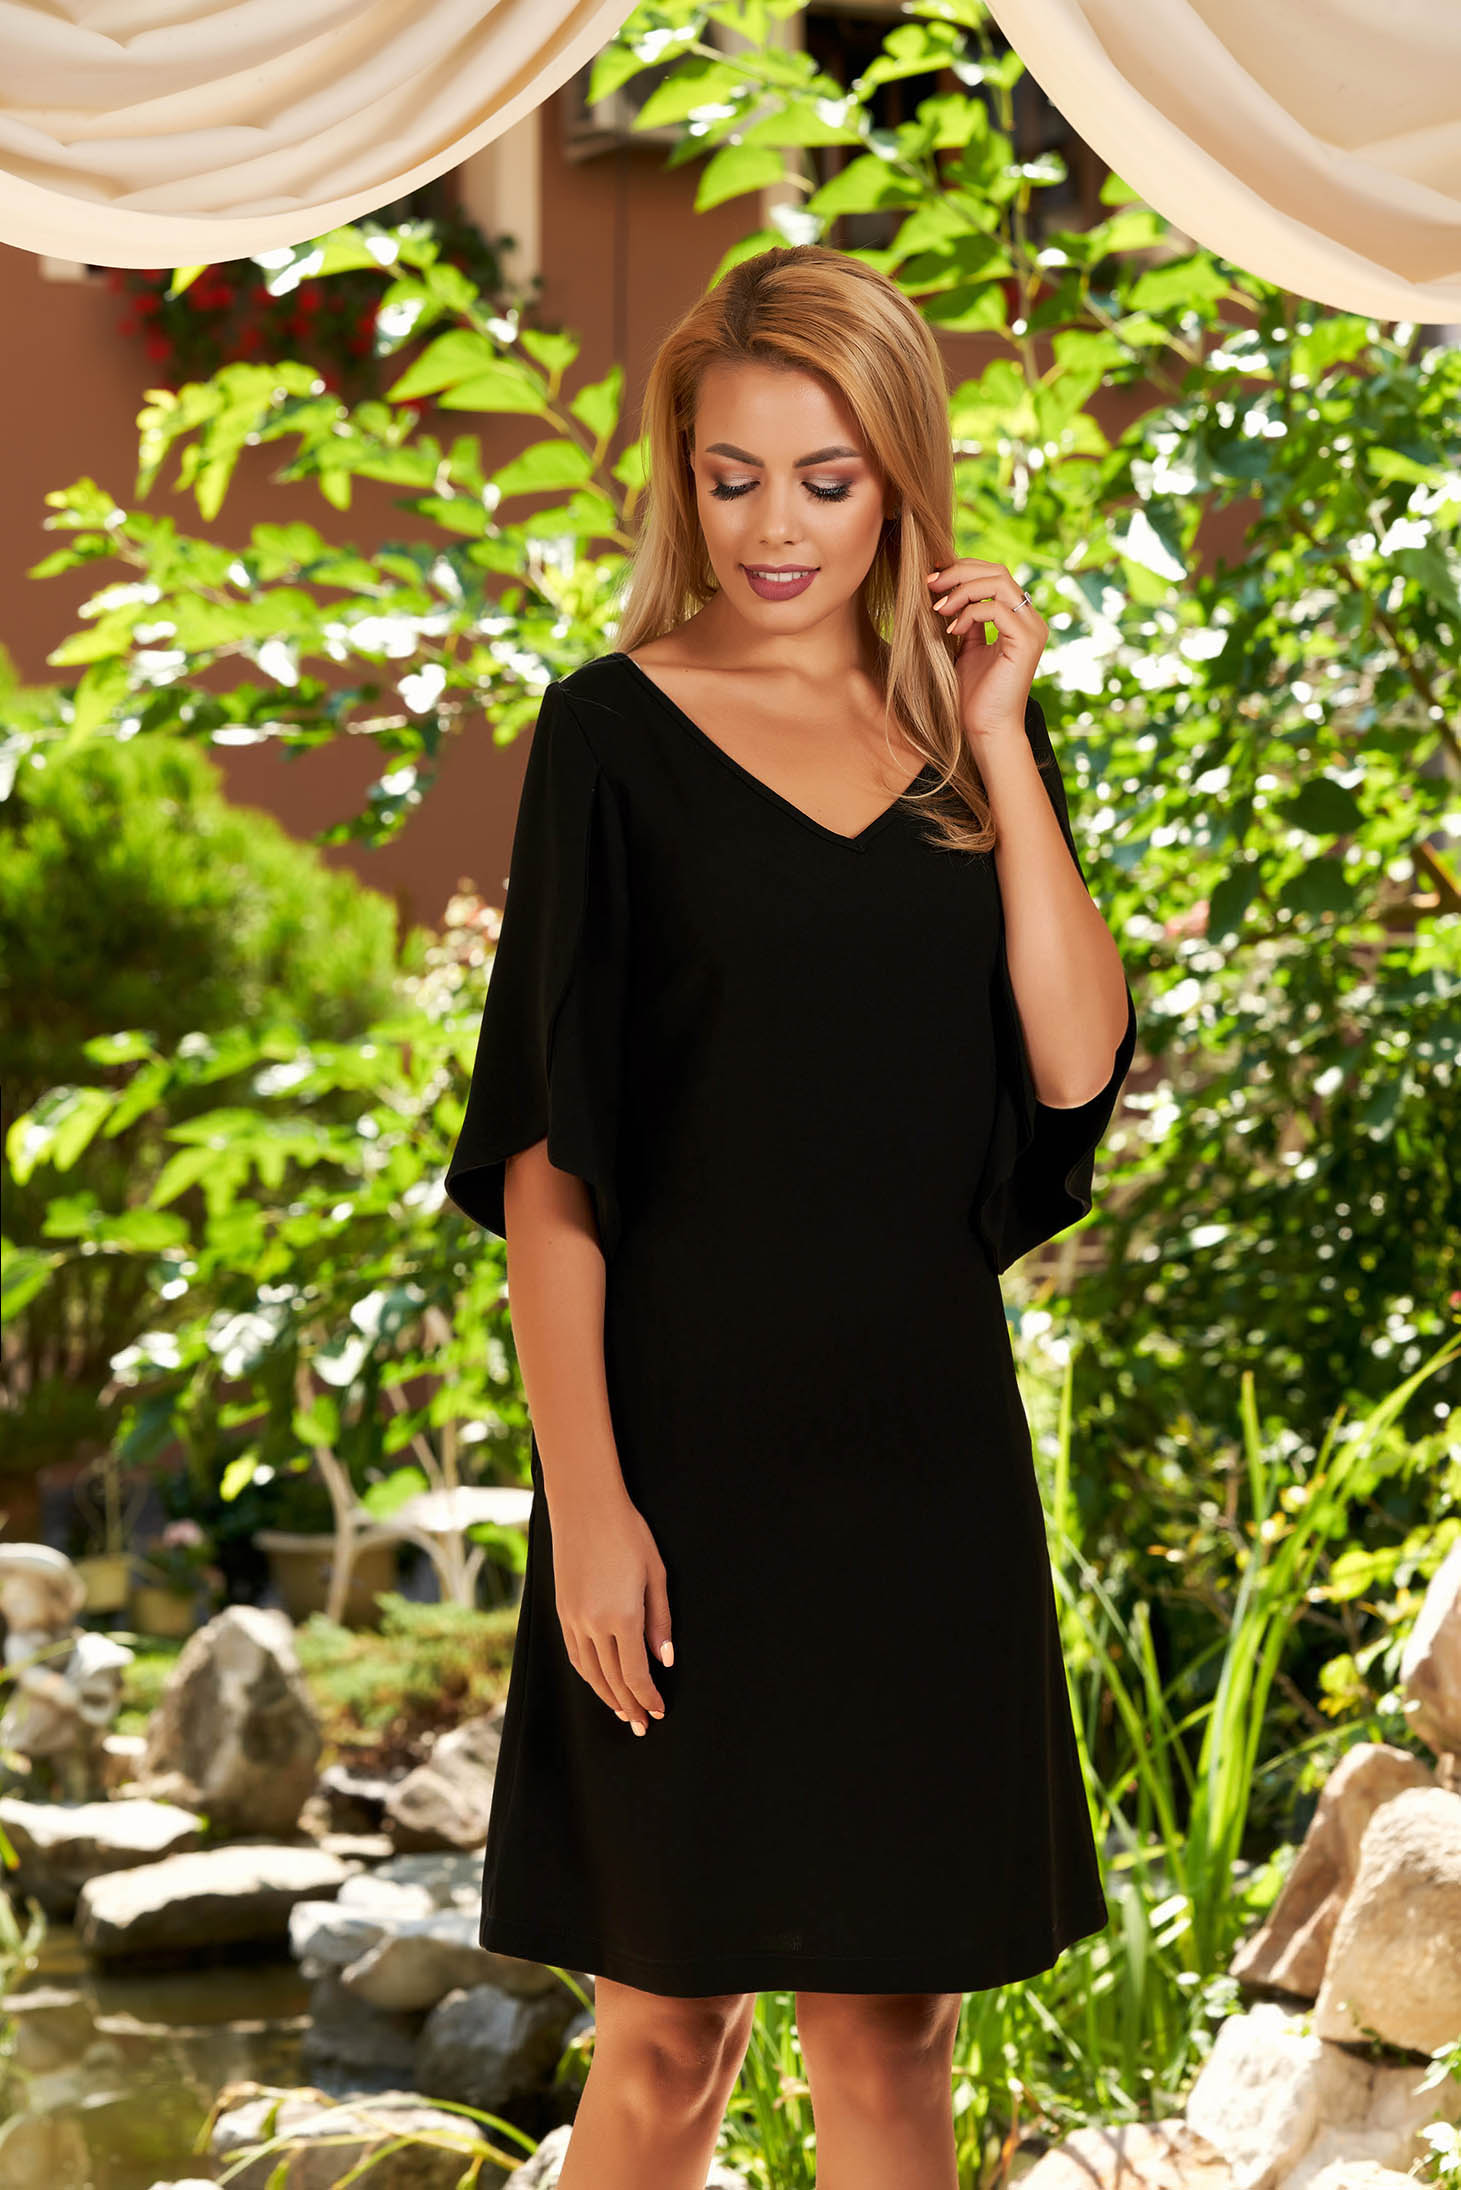 Short cut elegant black dress straight with pockets with v-neckline with cut-out sleeves